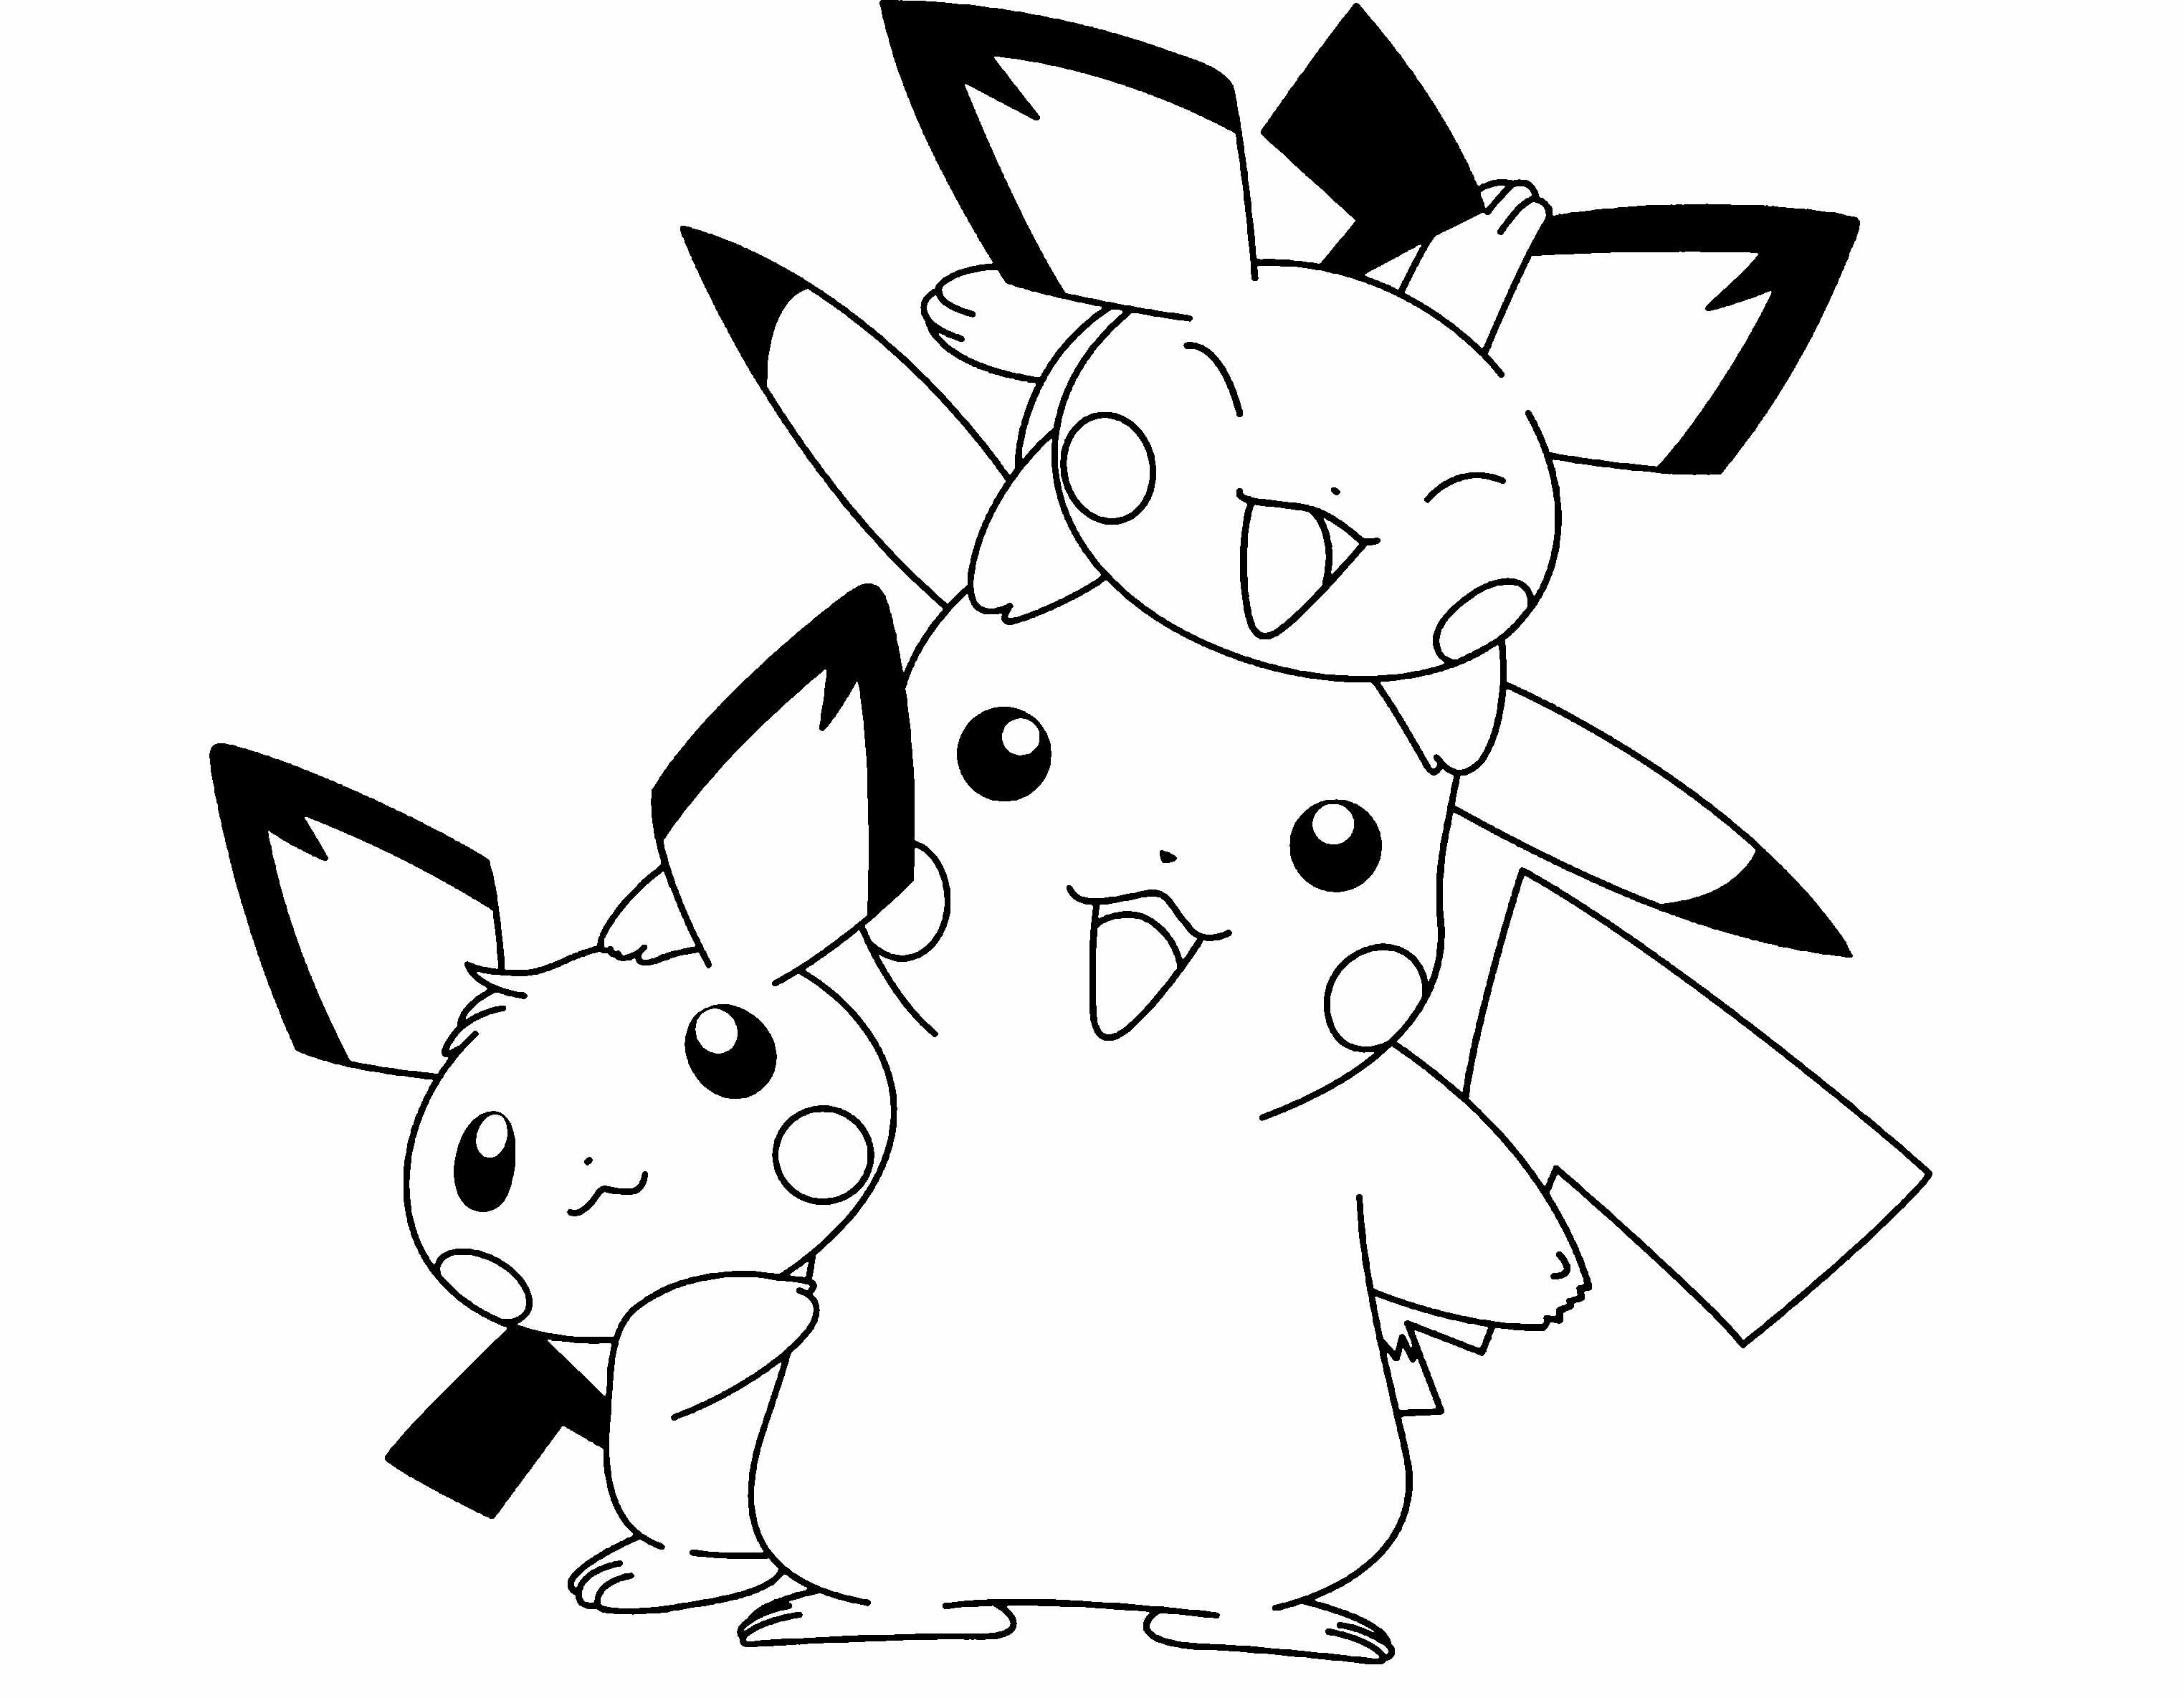 Pikachu coloring pages free printable - Pokemon Pikachu And Two Friends Are Cute Coloring Page